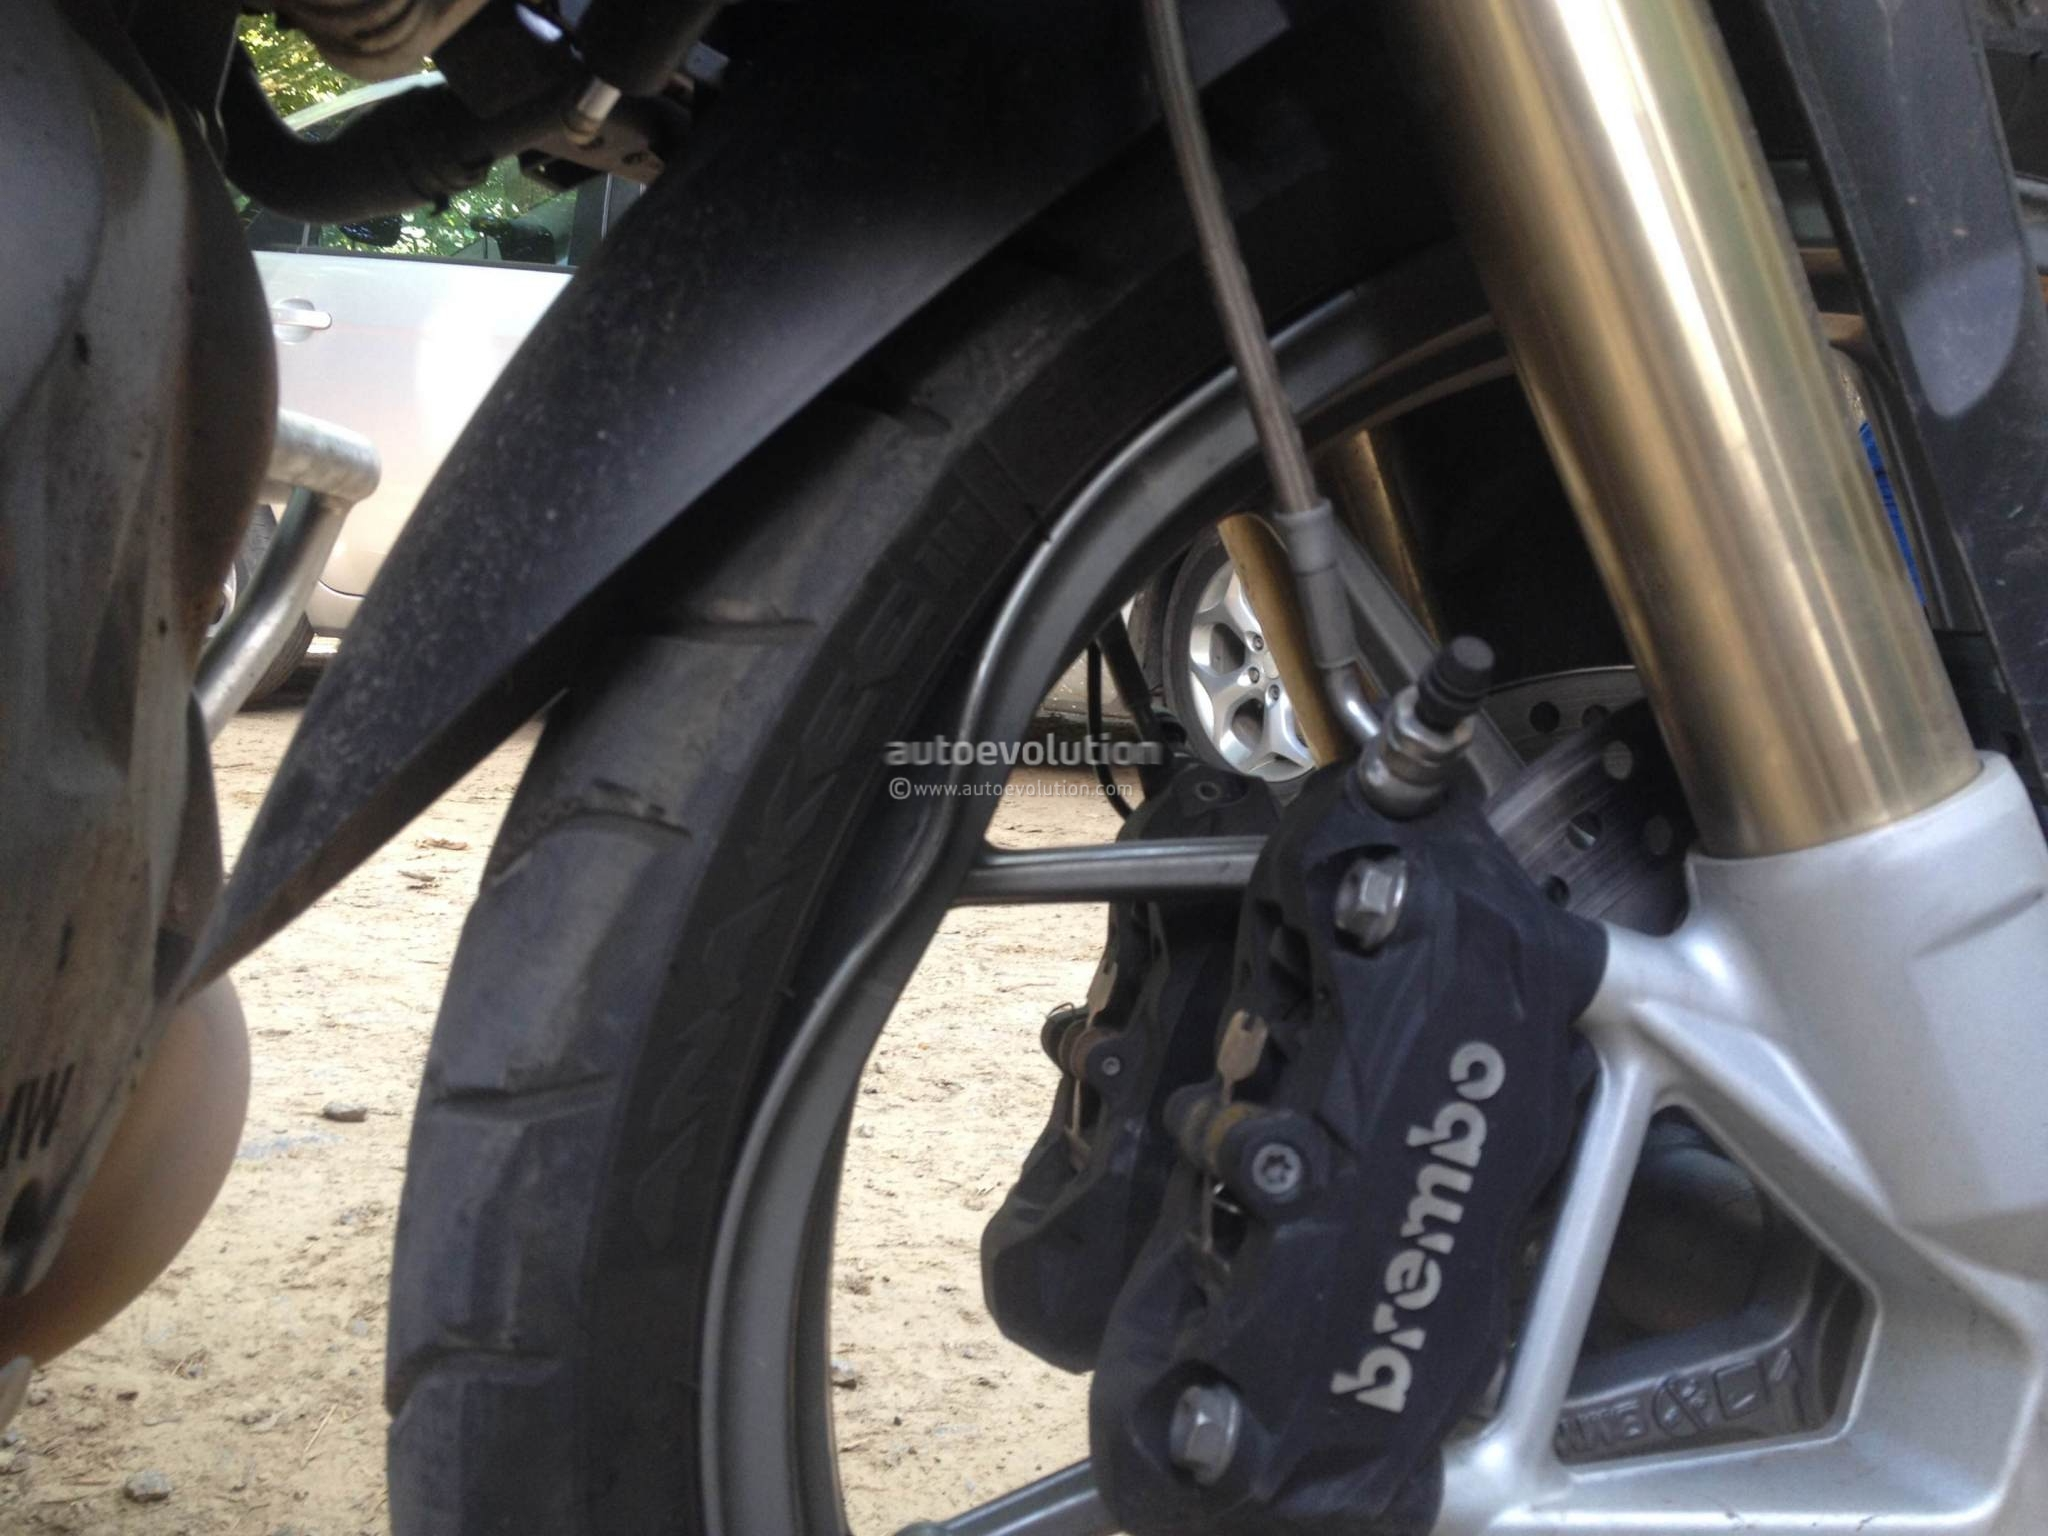 2014 BMW R1200GS Cast Wheels Can't Really Take Potholes ...